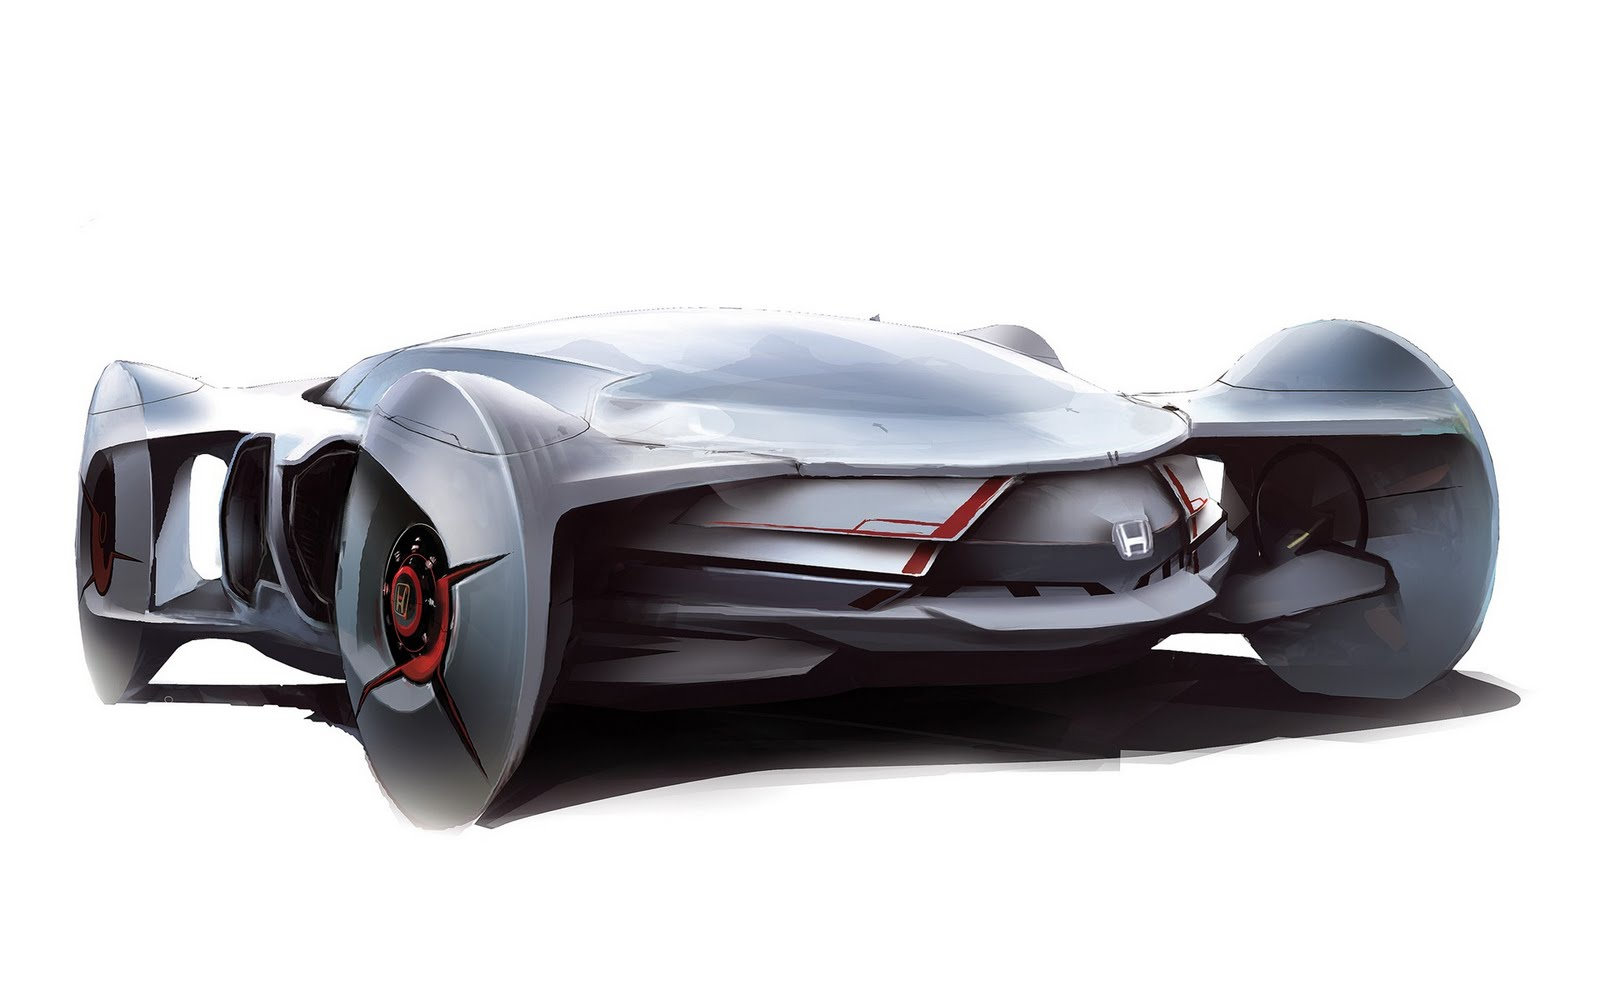 Wallpapers de Concept Cars